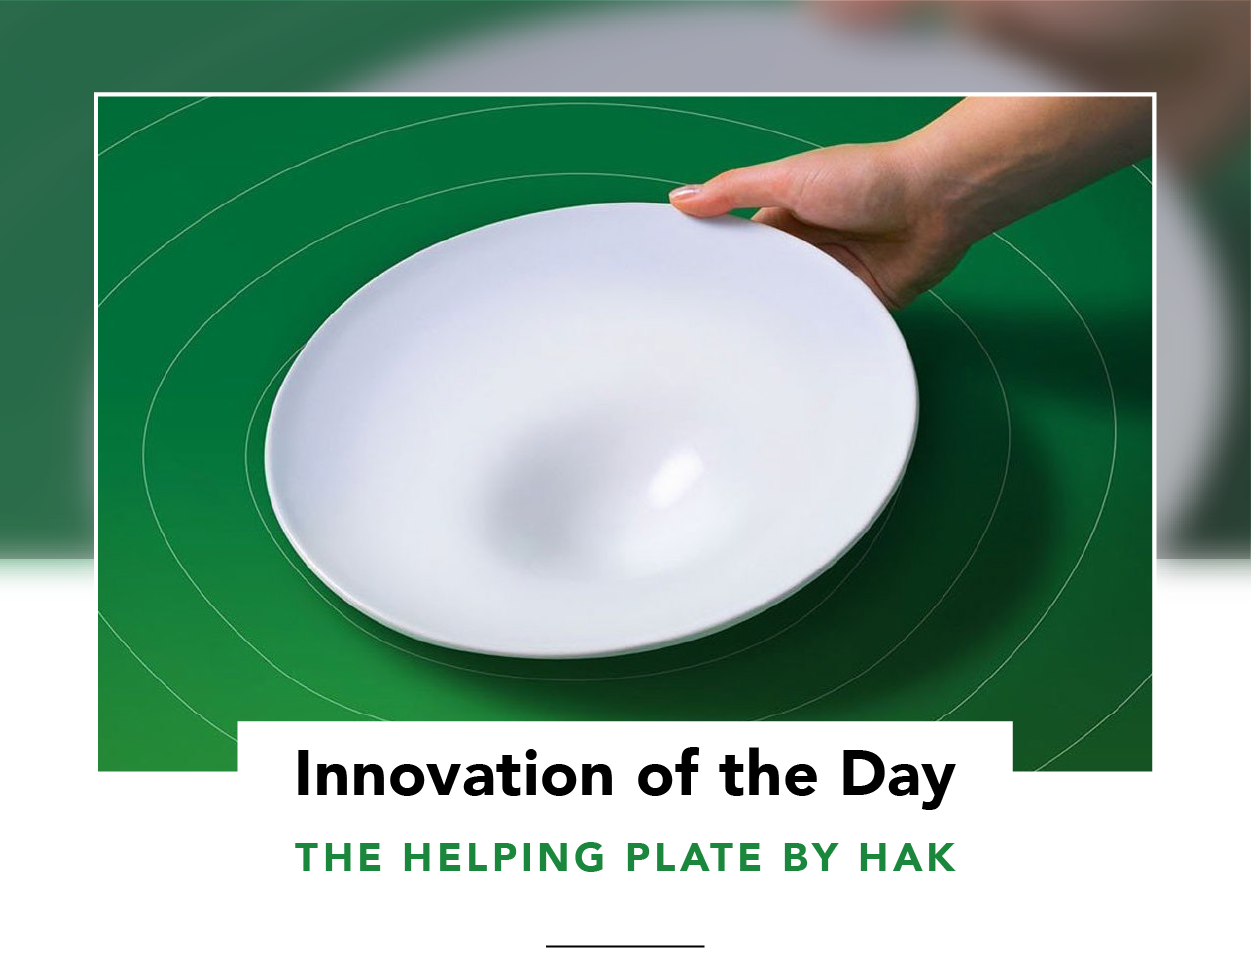 Large white dinner plate with a circular indentation